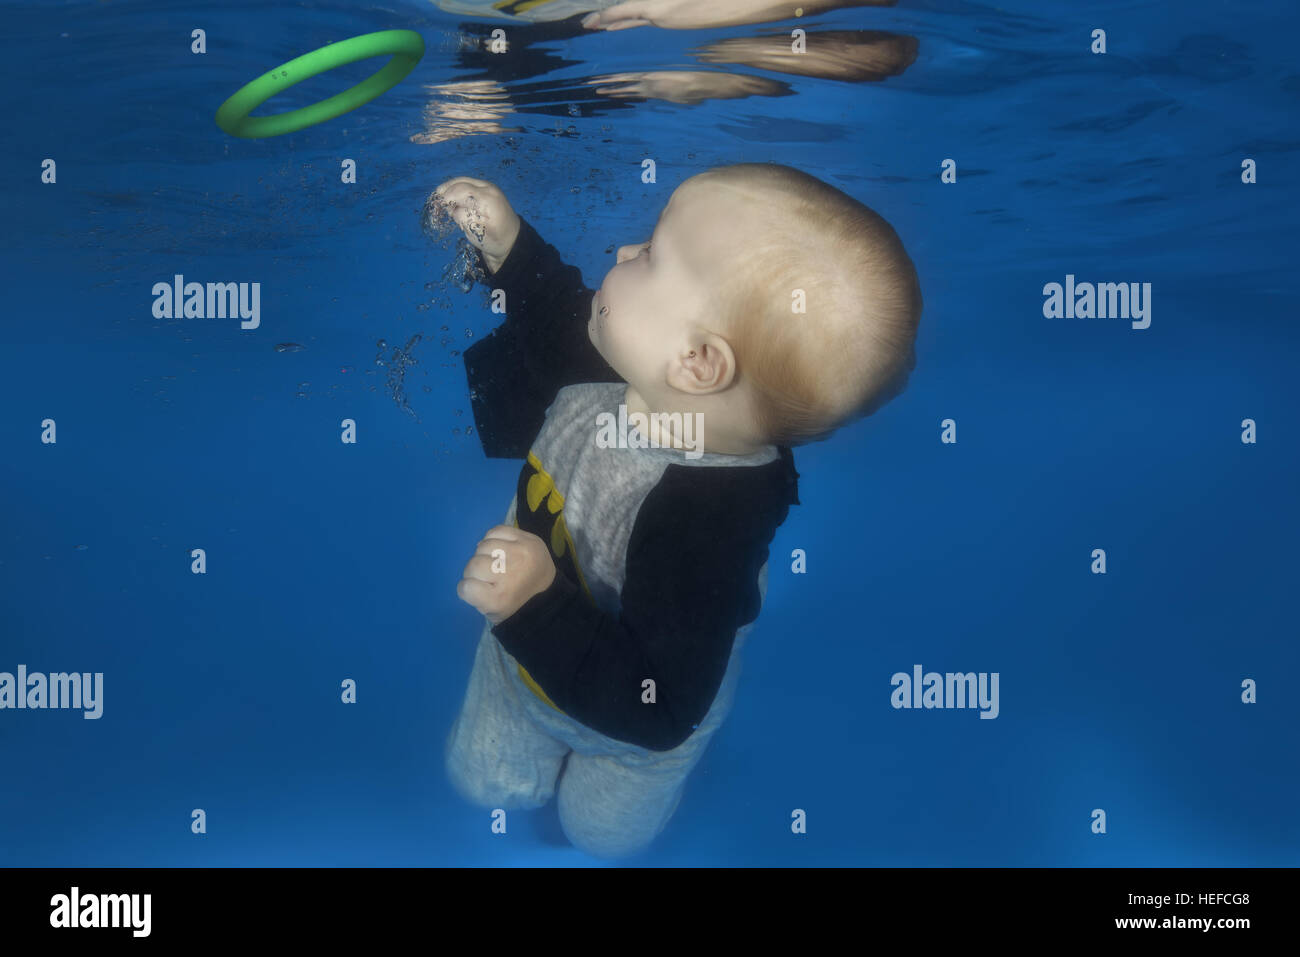 c99e5610e2851 Little boy in a Batman costume posing under the water in the pool - Stock  Image